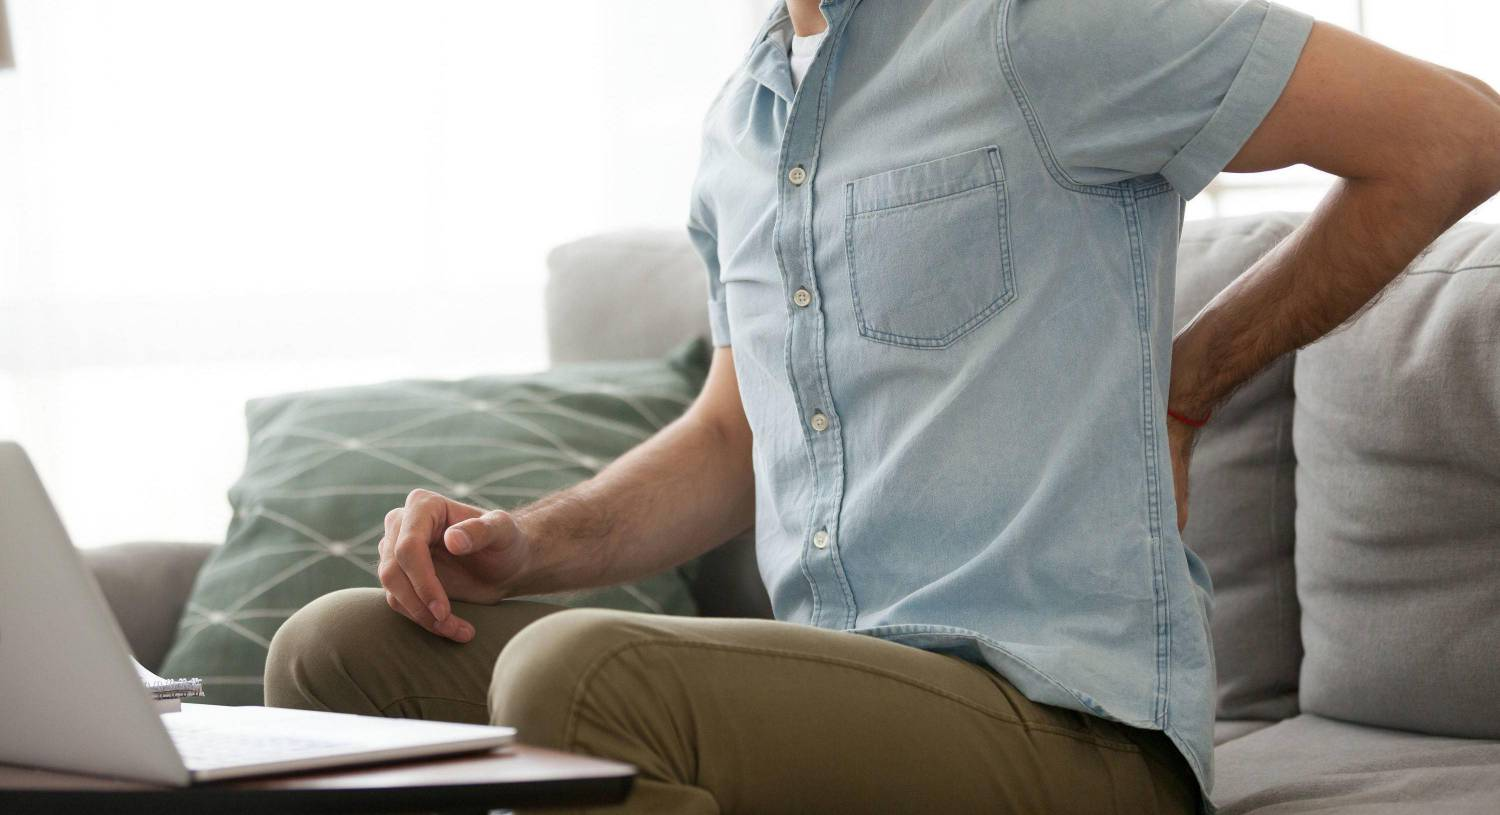 83% of Irish workers want to continue working from home when crisis eases - survey